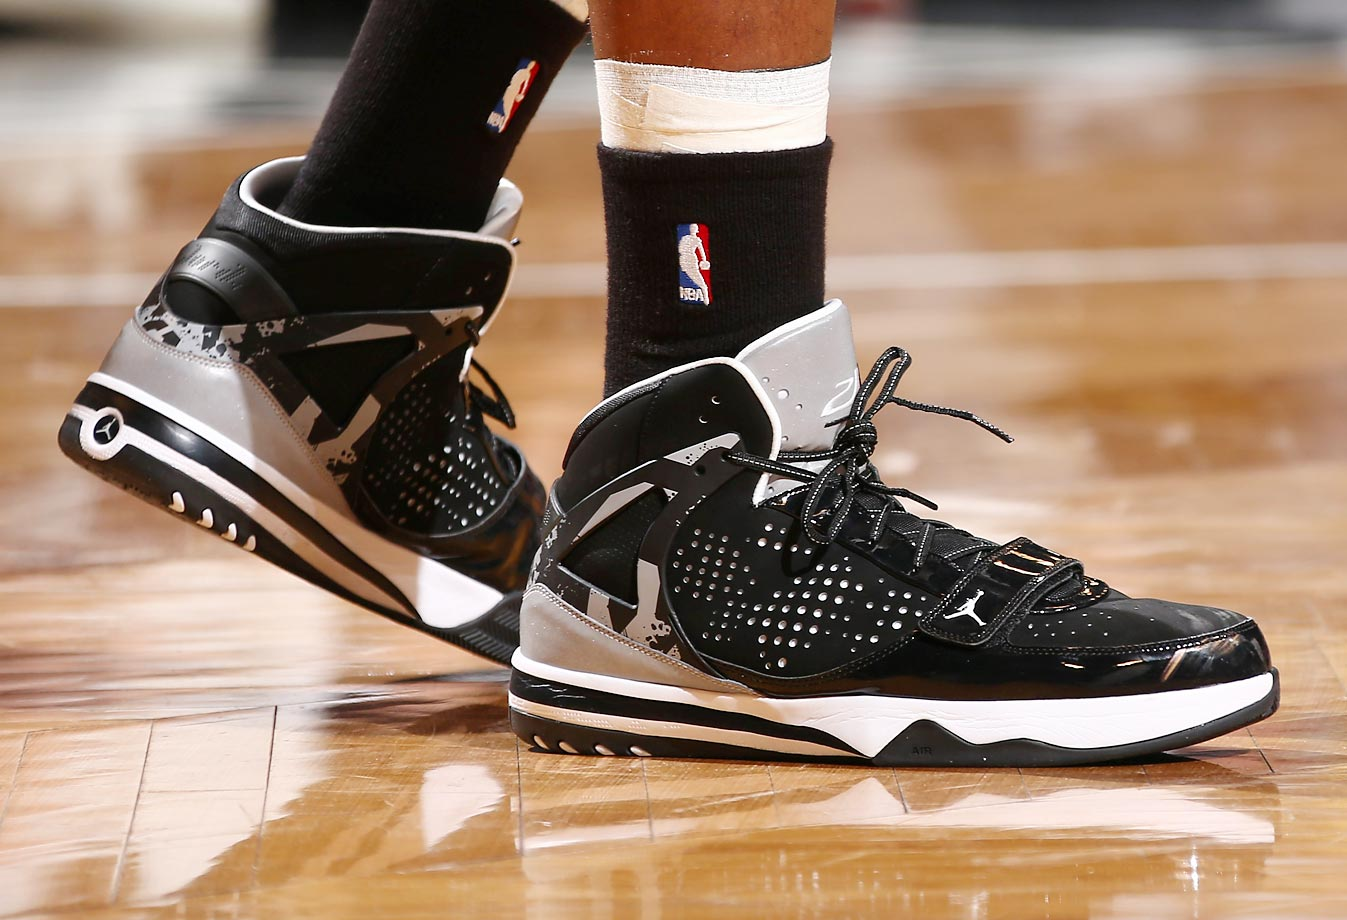 125f81342285 Johnson s sneakers are shown in Game Four of the Eastern Conference  Semifinals against the Miami Heat